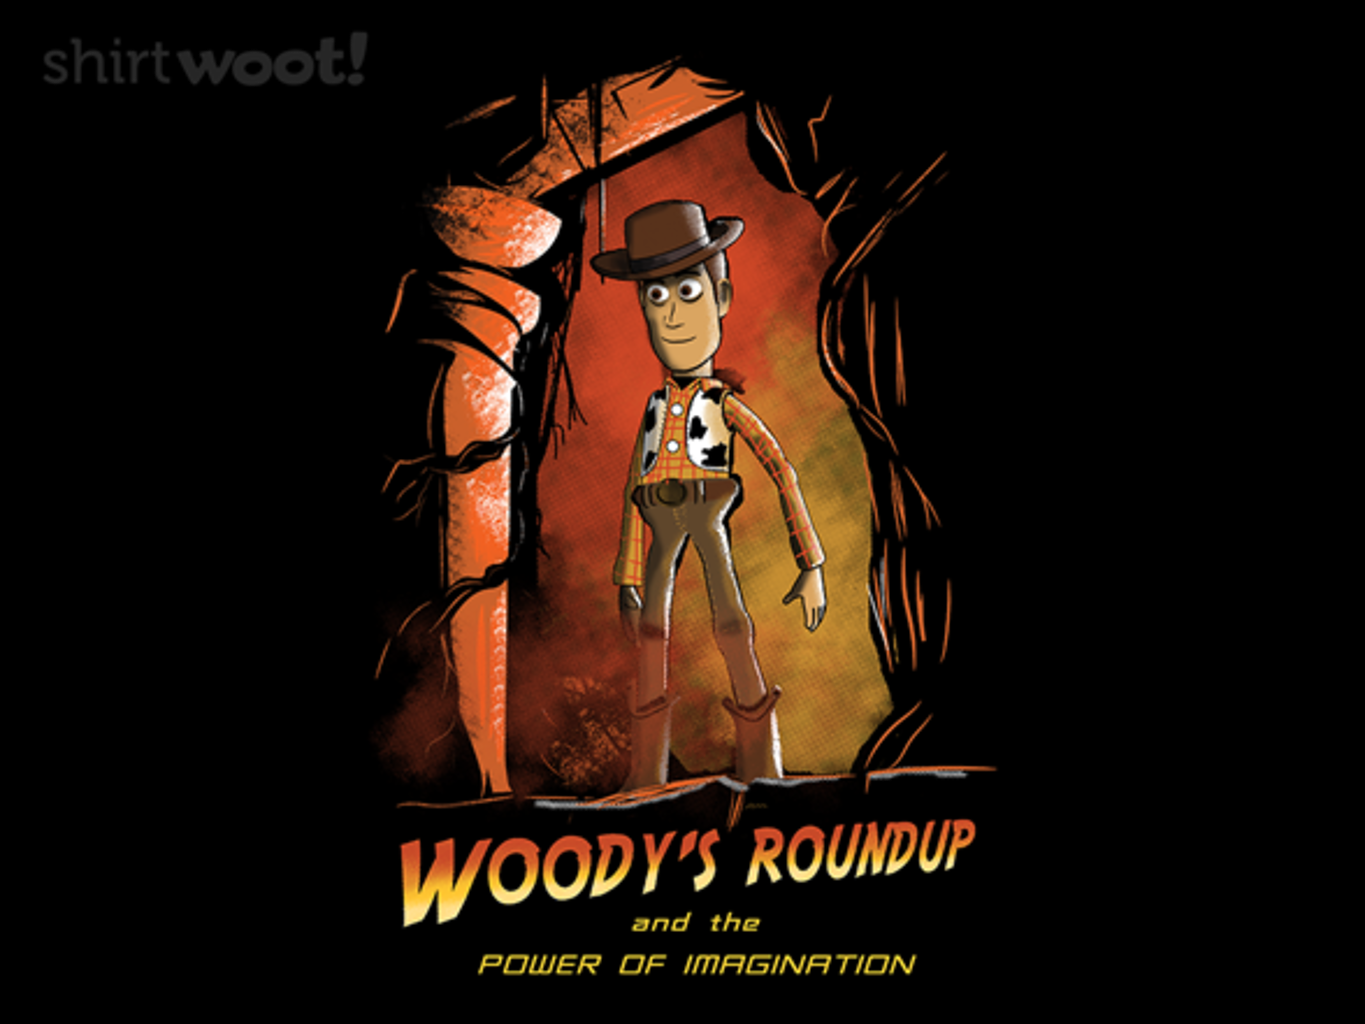 Woot!: Woody's Roundup and the Power of Imagination